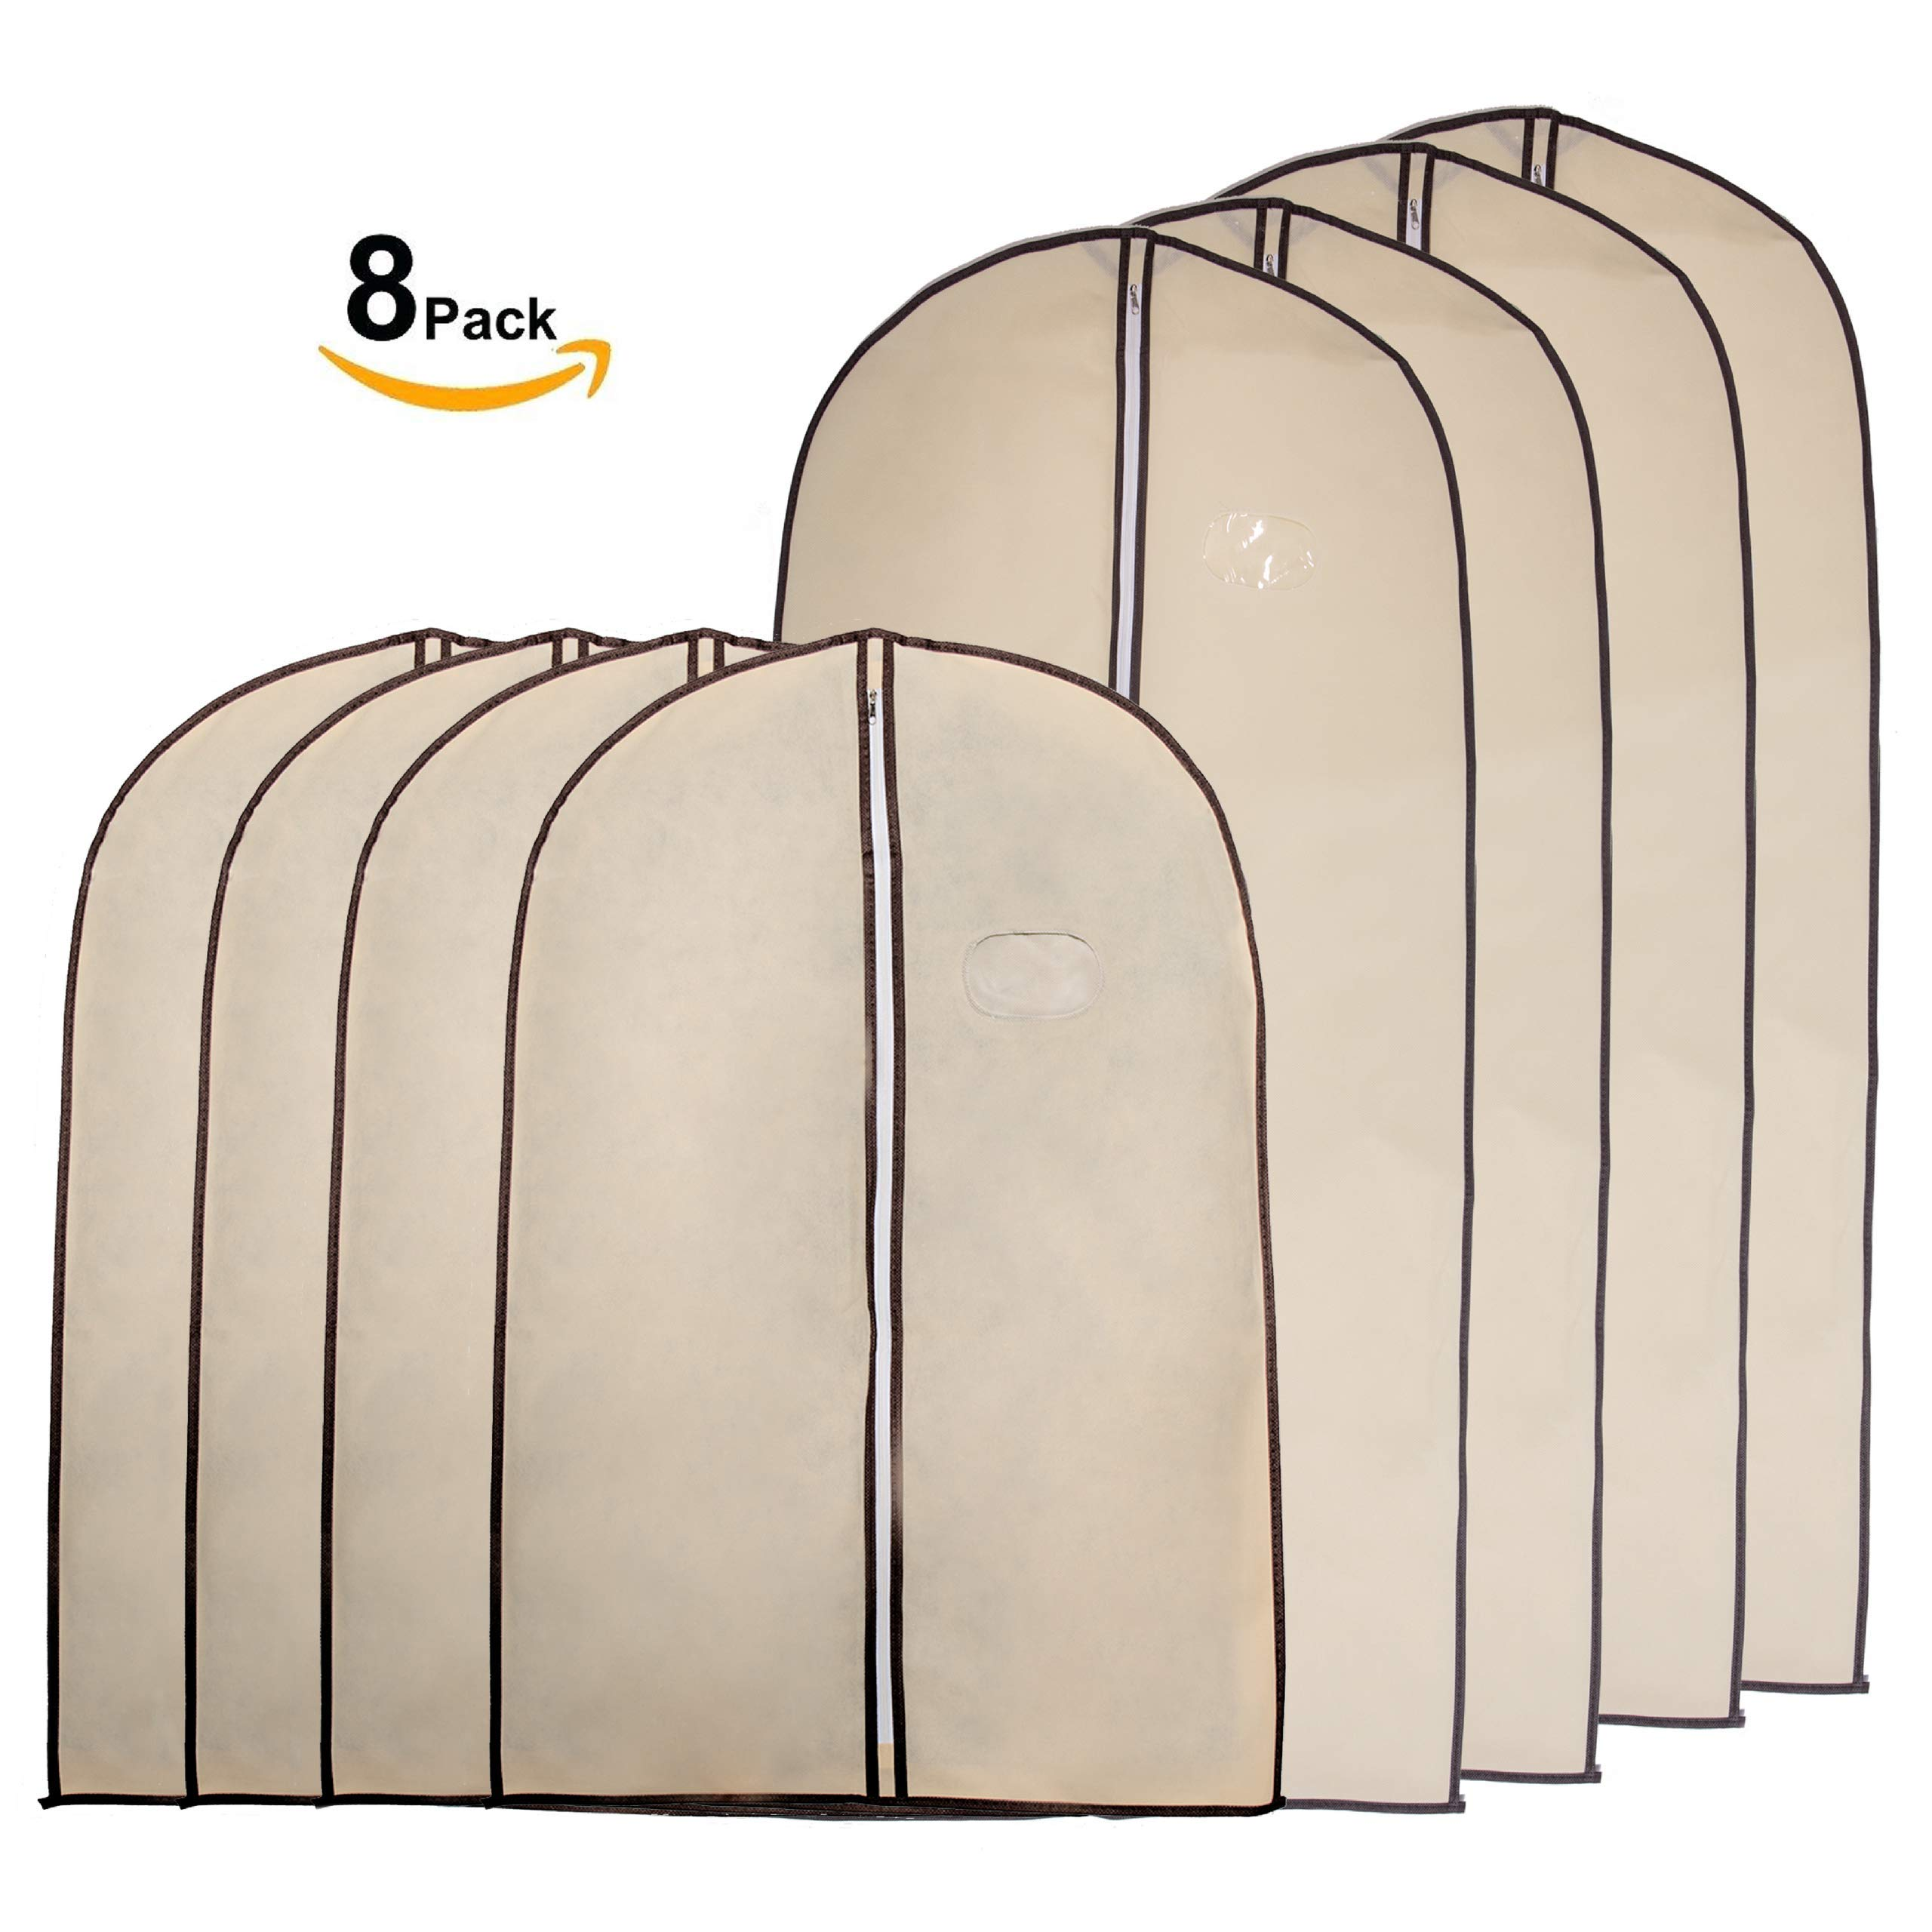 Garment Bags by Home Zone - 8 Piece Multi Pack of Breathable Garment Bag Clothes Covers - Protect Garments, Suits and Costumes - Ideal for Travel - Coffee & Cream Finish - Includes 4 Medium & 4 Large